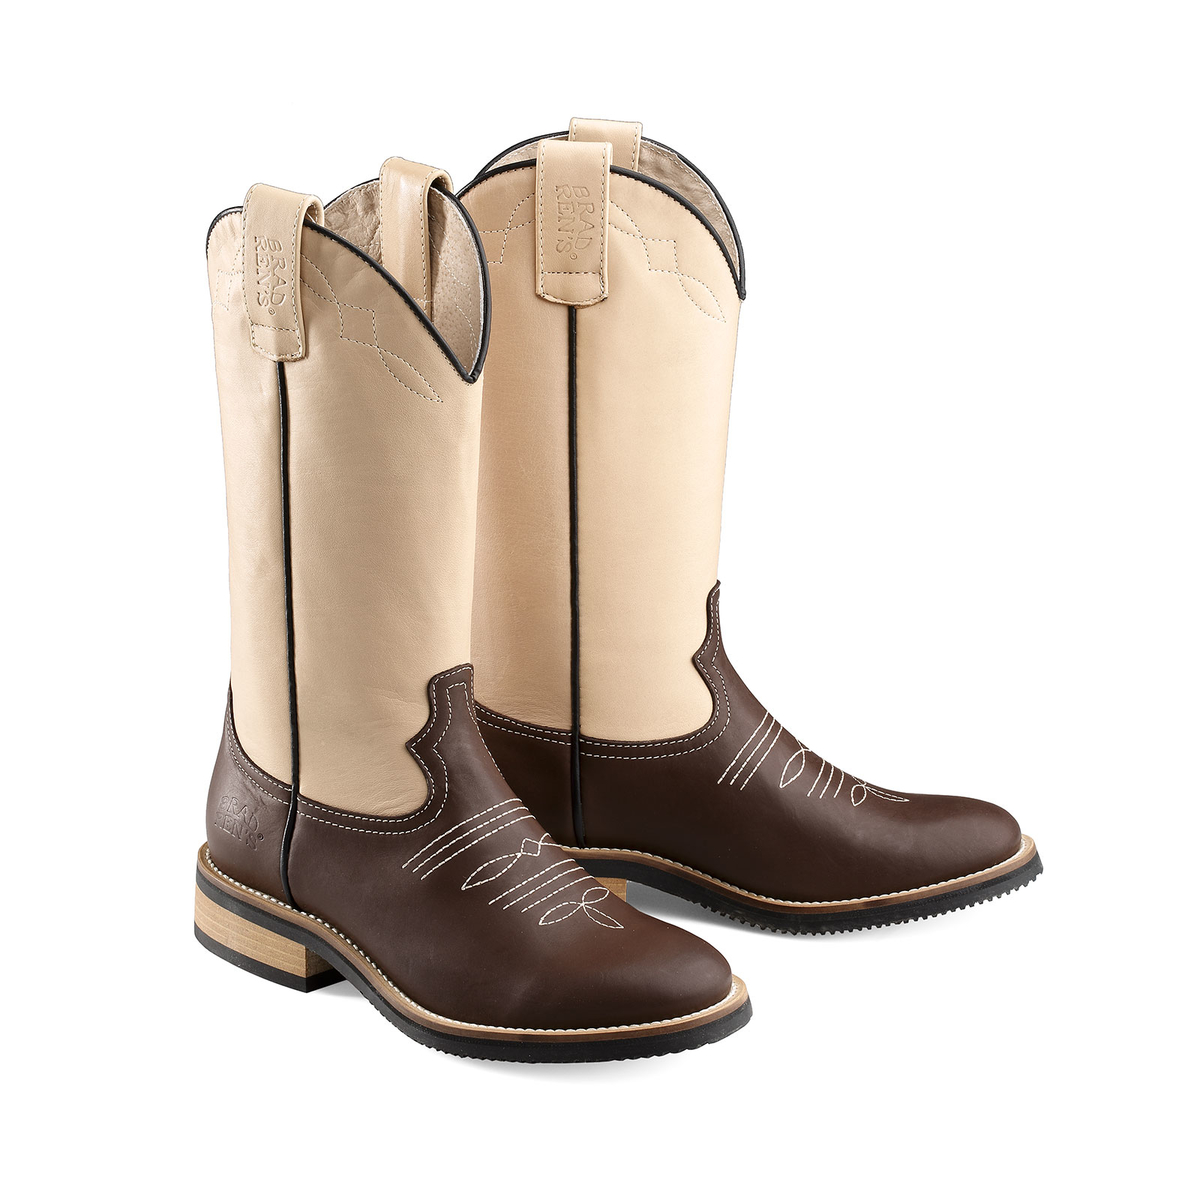 Tattini Brad Rens Work Walk Avalanche Boots